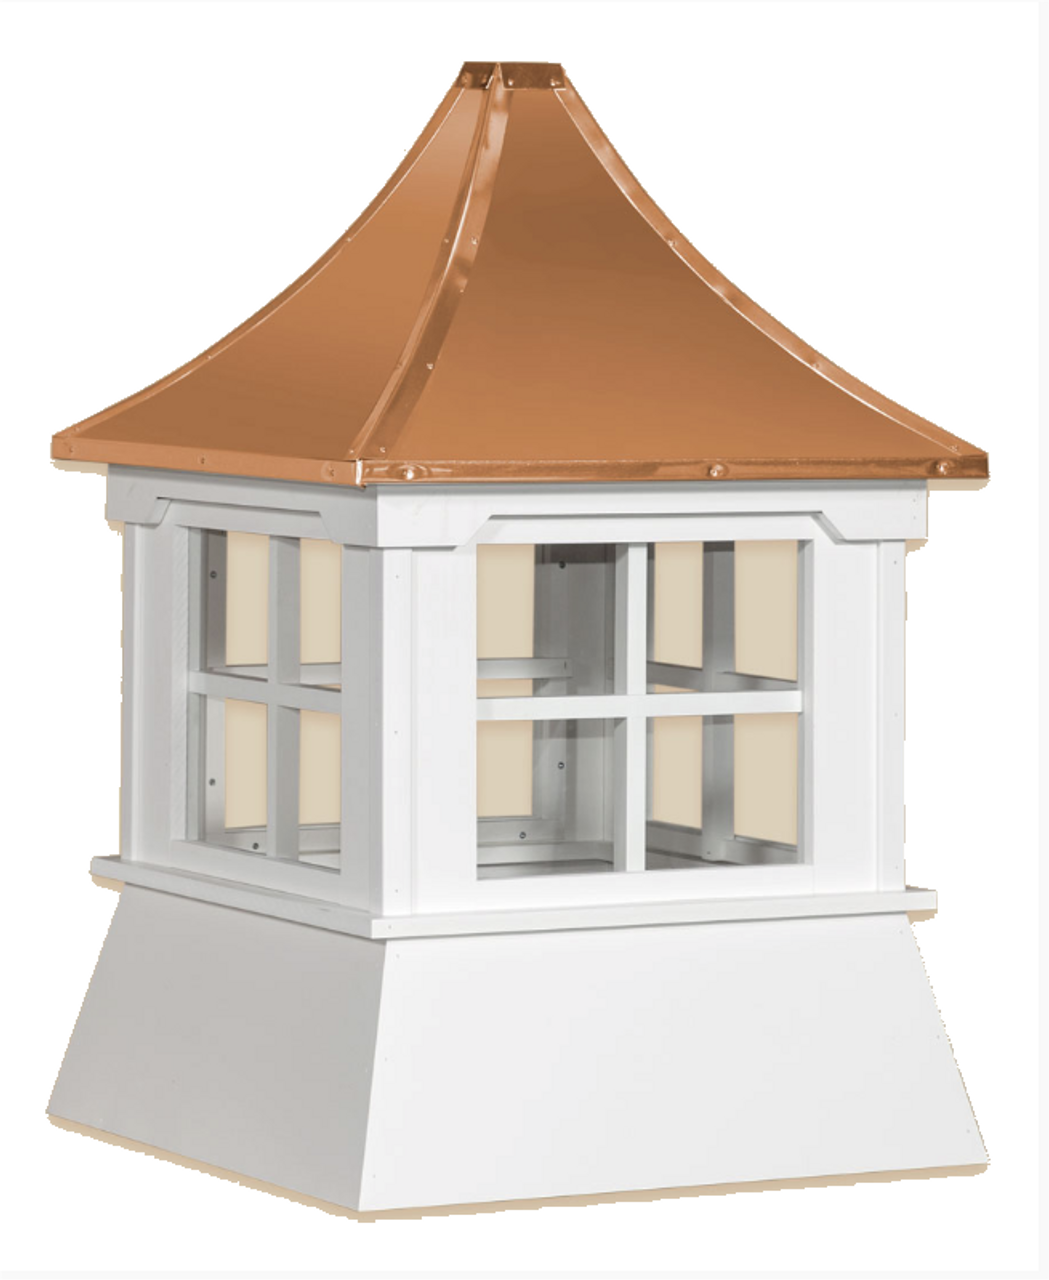 Cupola - Victorian Shed: Azek – Windowed Pagoda Copper Top - 30Lx30Wx36H